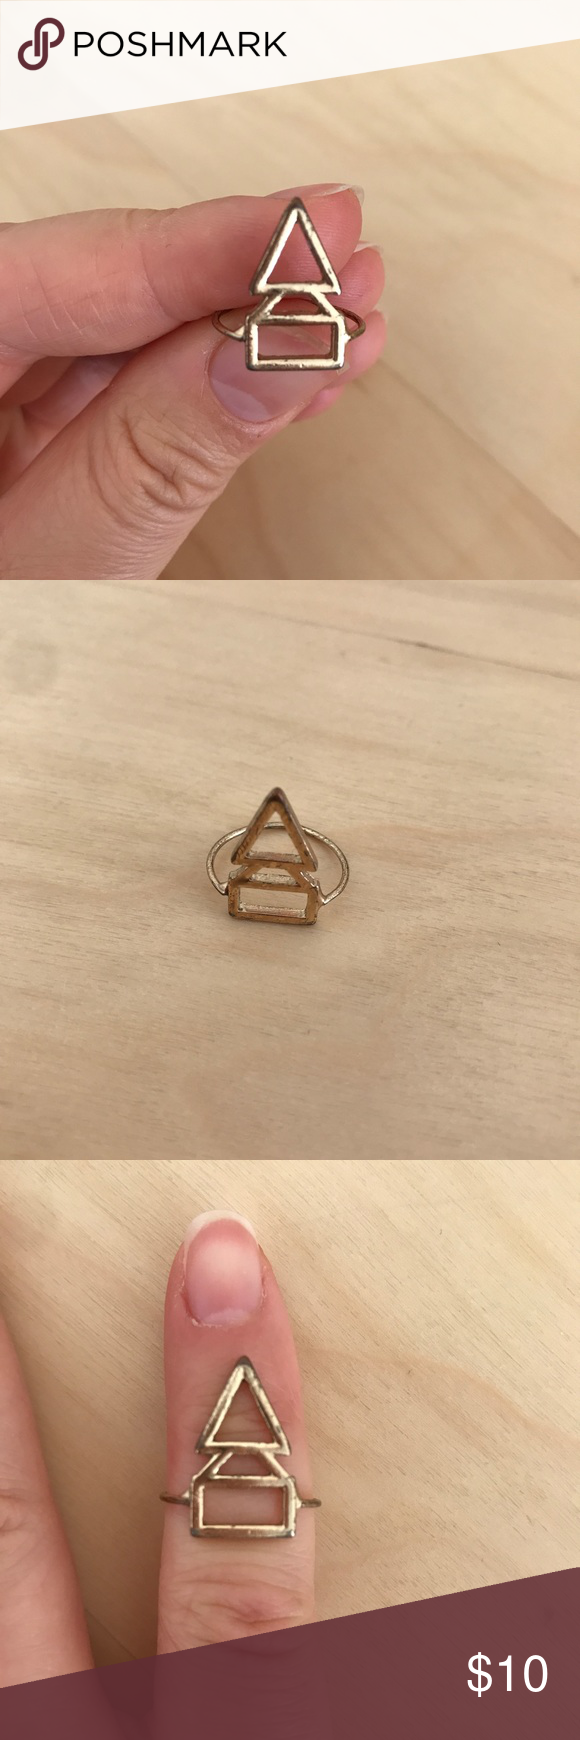 Madewell Geometric Midi Ring Madewell is not stamped on the inside